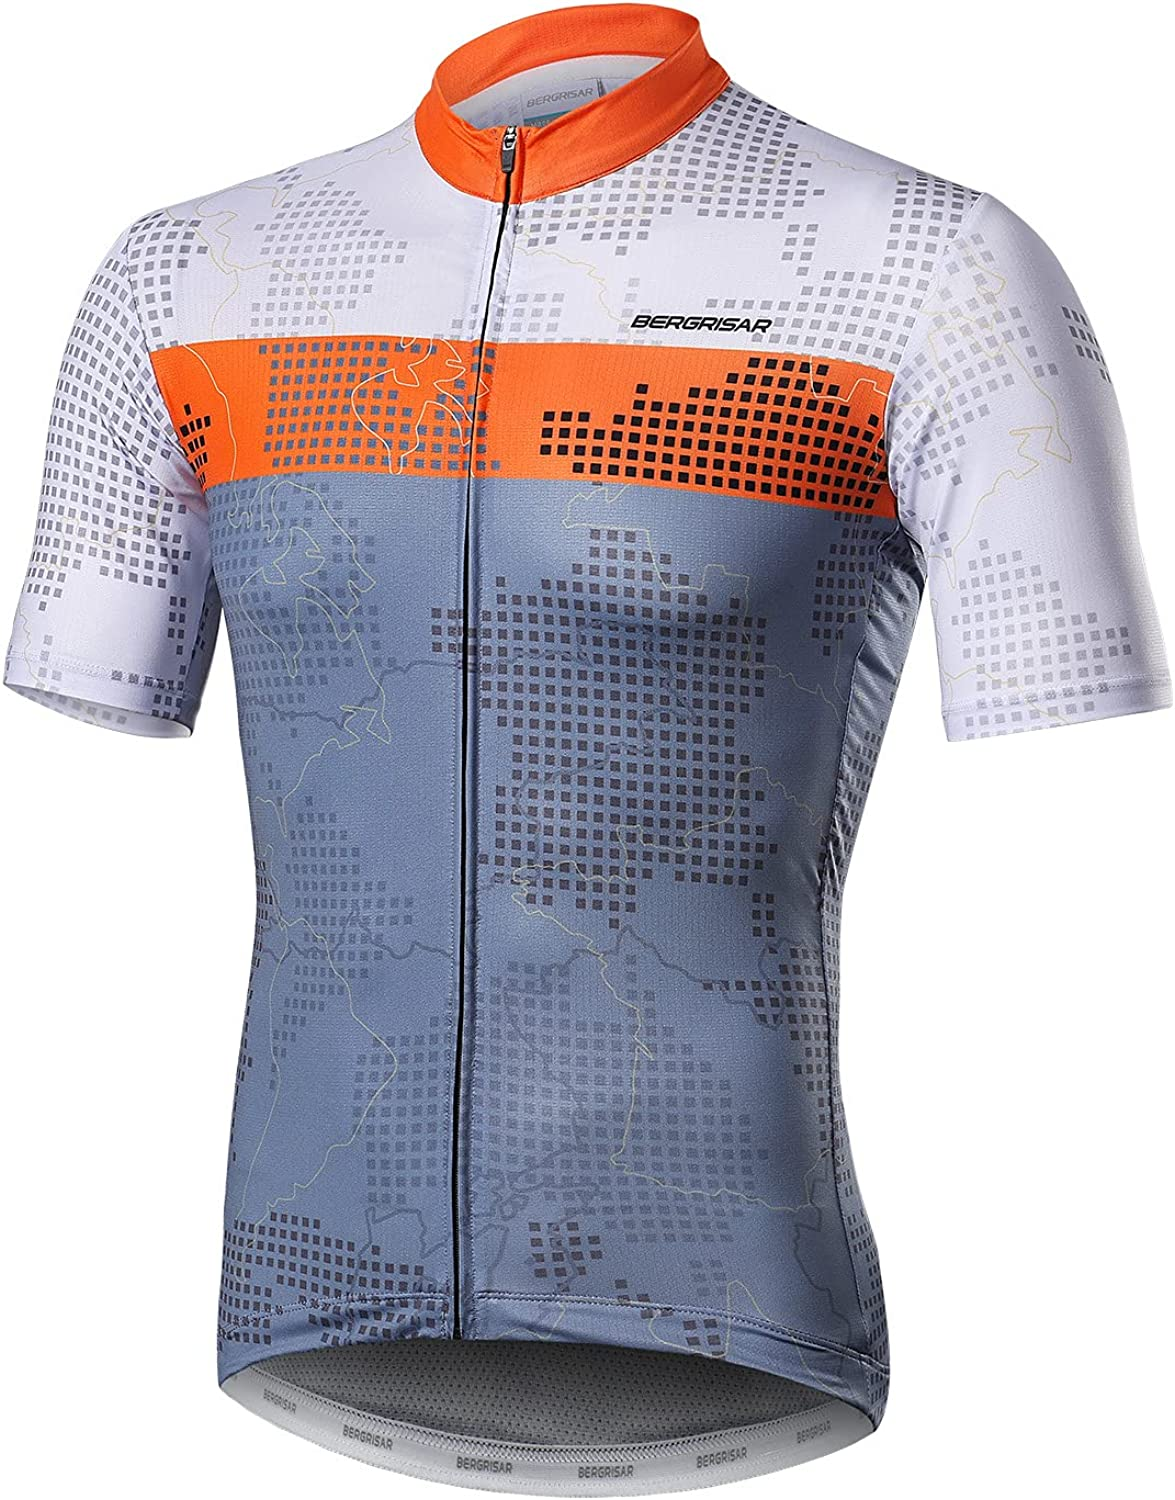 BERGRISAR Cycling Jersey Mens Bike Max 82% OFF Shirts B Short Sleeve Gorgeous Bicycle